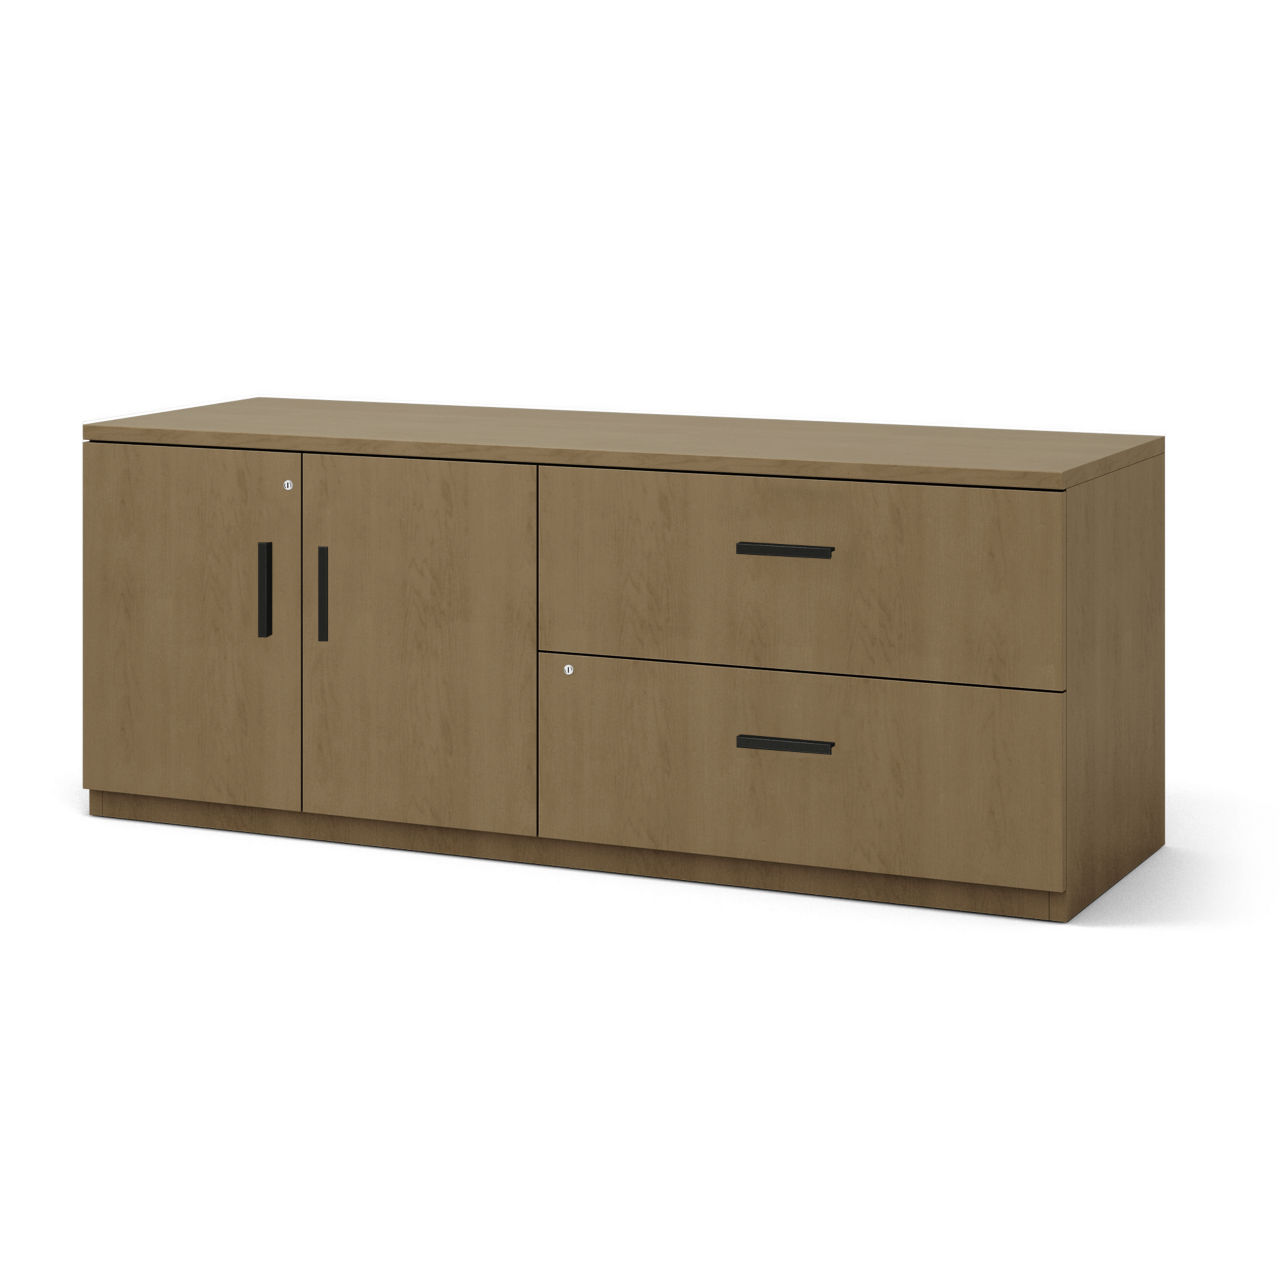 Currency File and Storage Credenza in Virginia Walnut by Steelcase